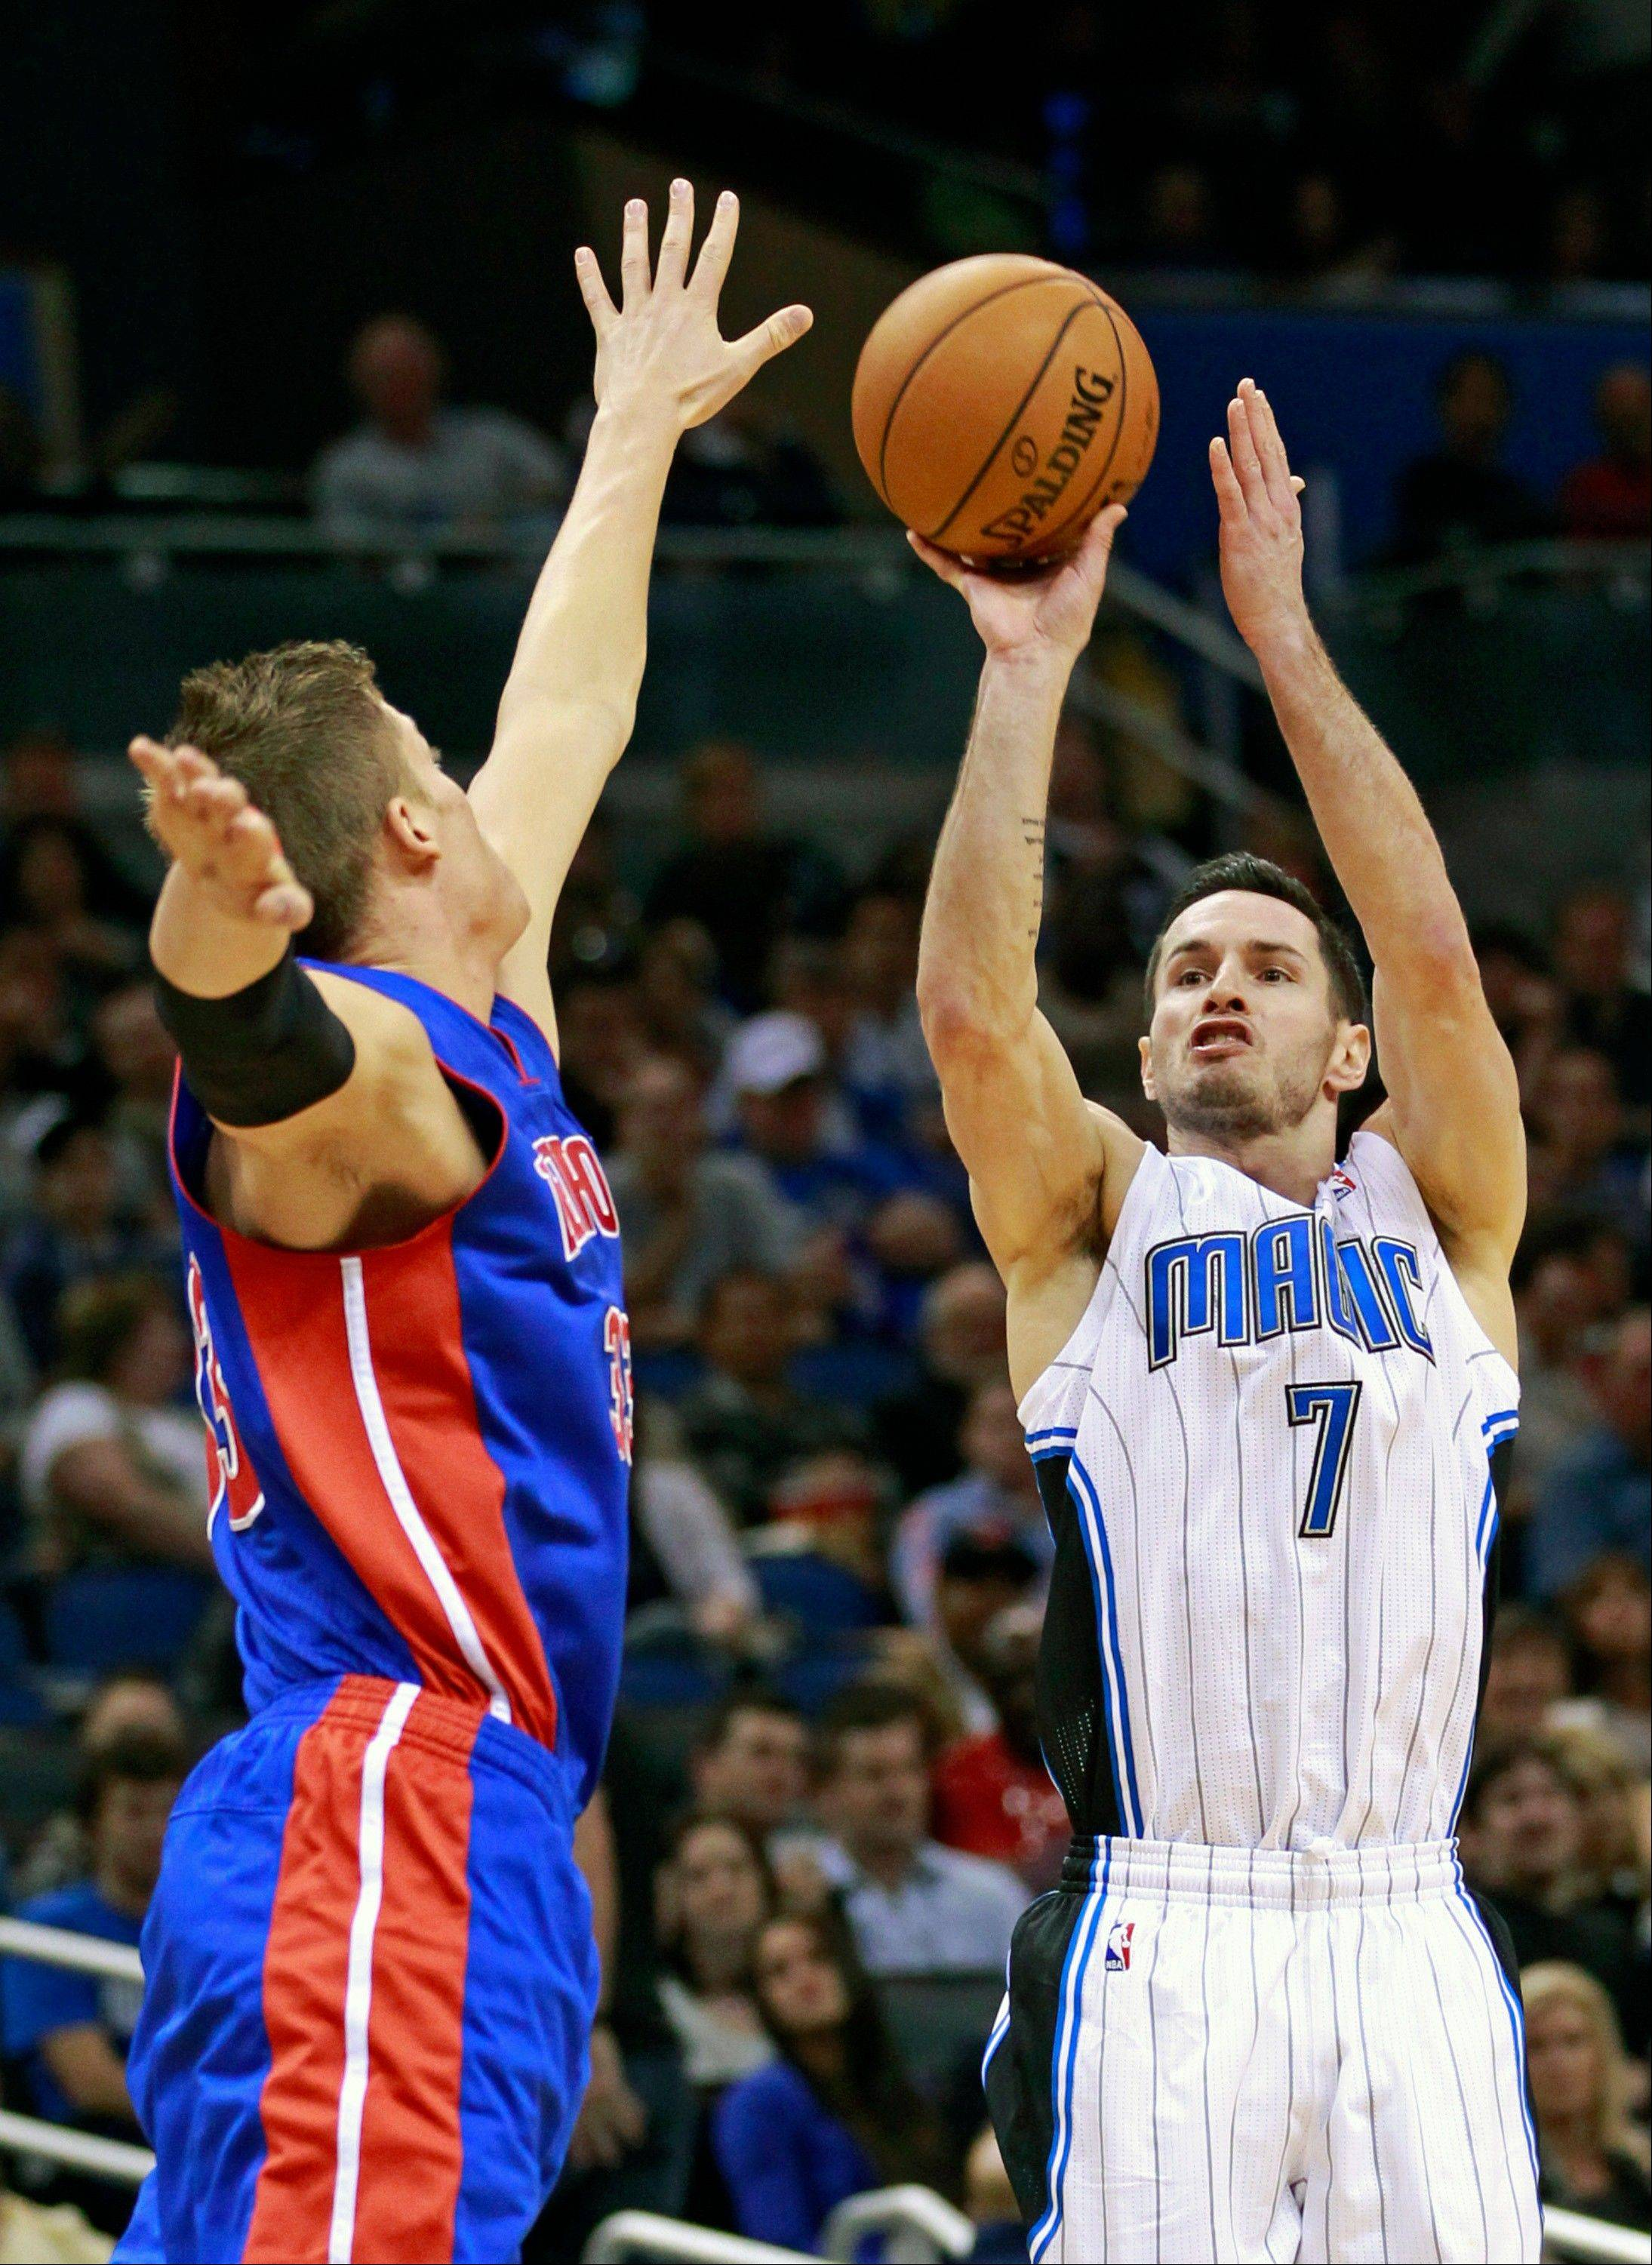 The Magic's J.J. Redick takes a 3-point shot over the arms of Detroit's Jonas Jerebko during the second half Wednesday in Orlando.